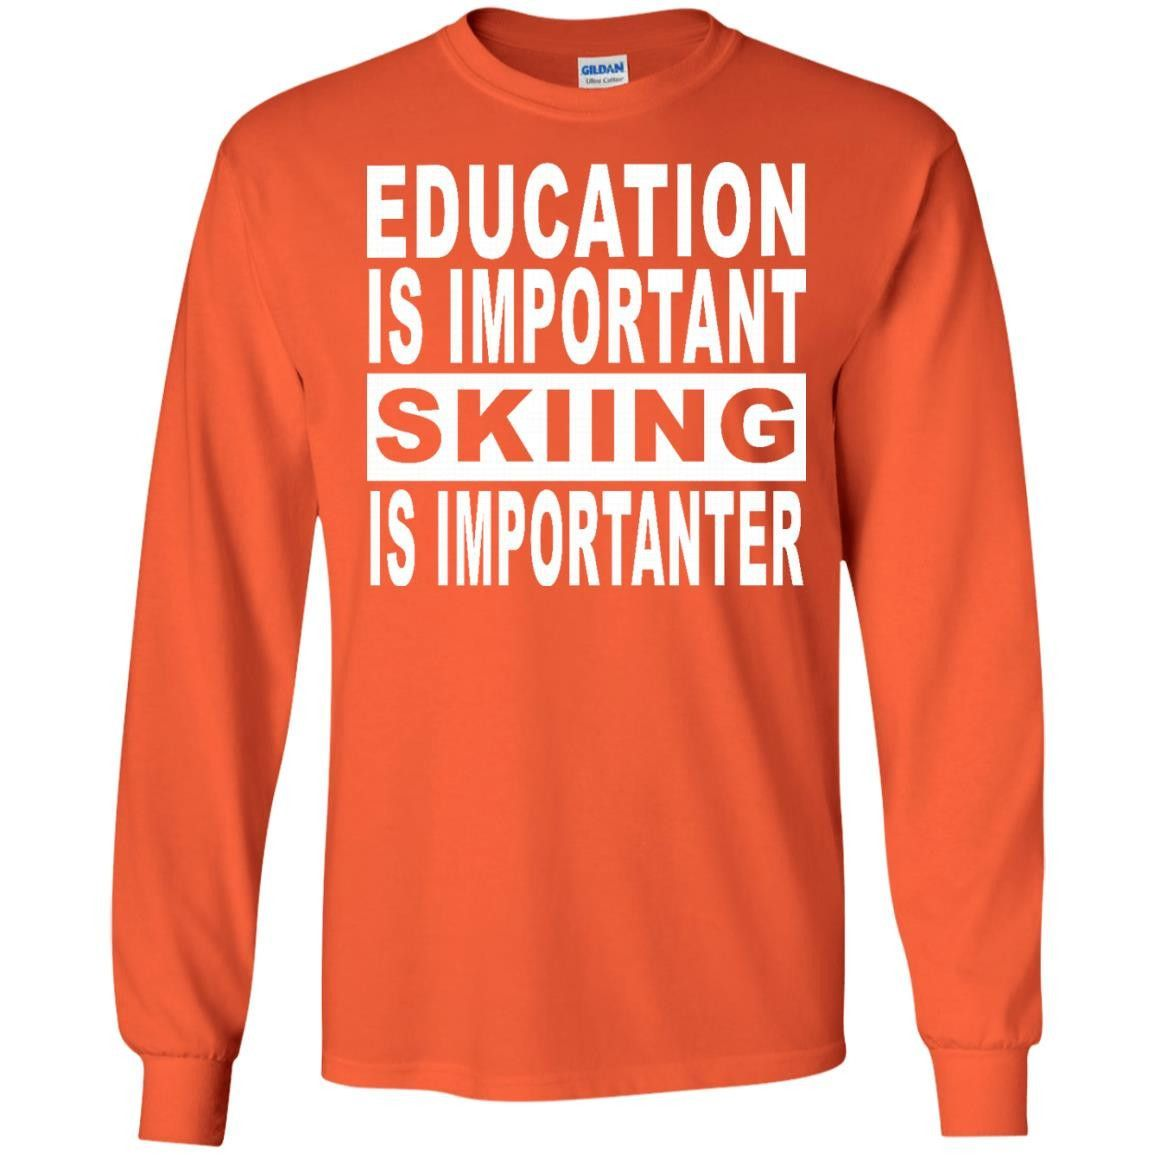 EDUCATION-IMPORTANT-Skiing G240 Gildan LS Ultra Cotton T-Shirt